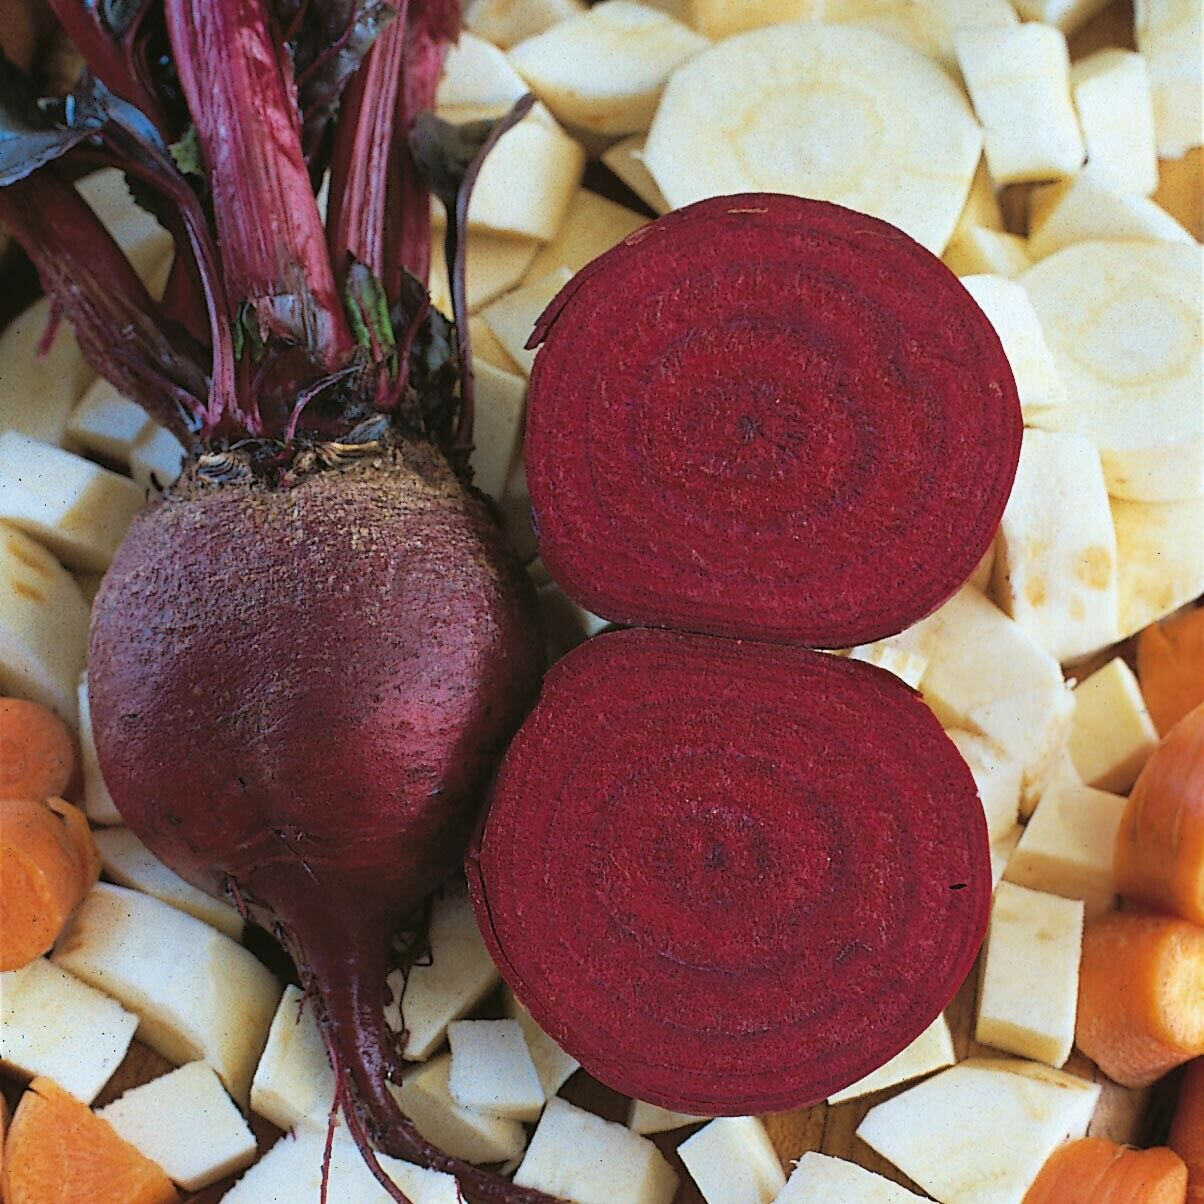 (165)'KINGS' QUALITY beet root detroit two seeds - salad Vegetable